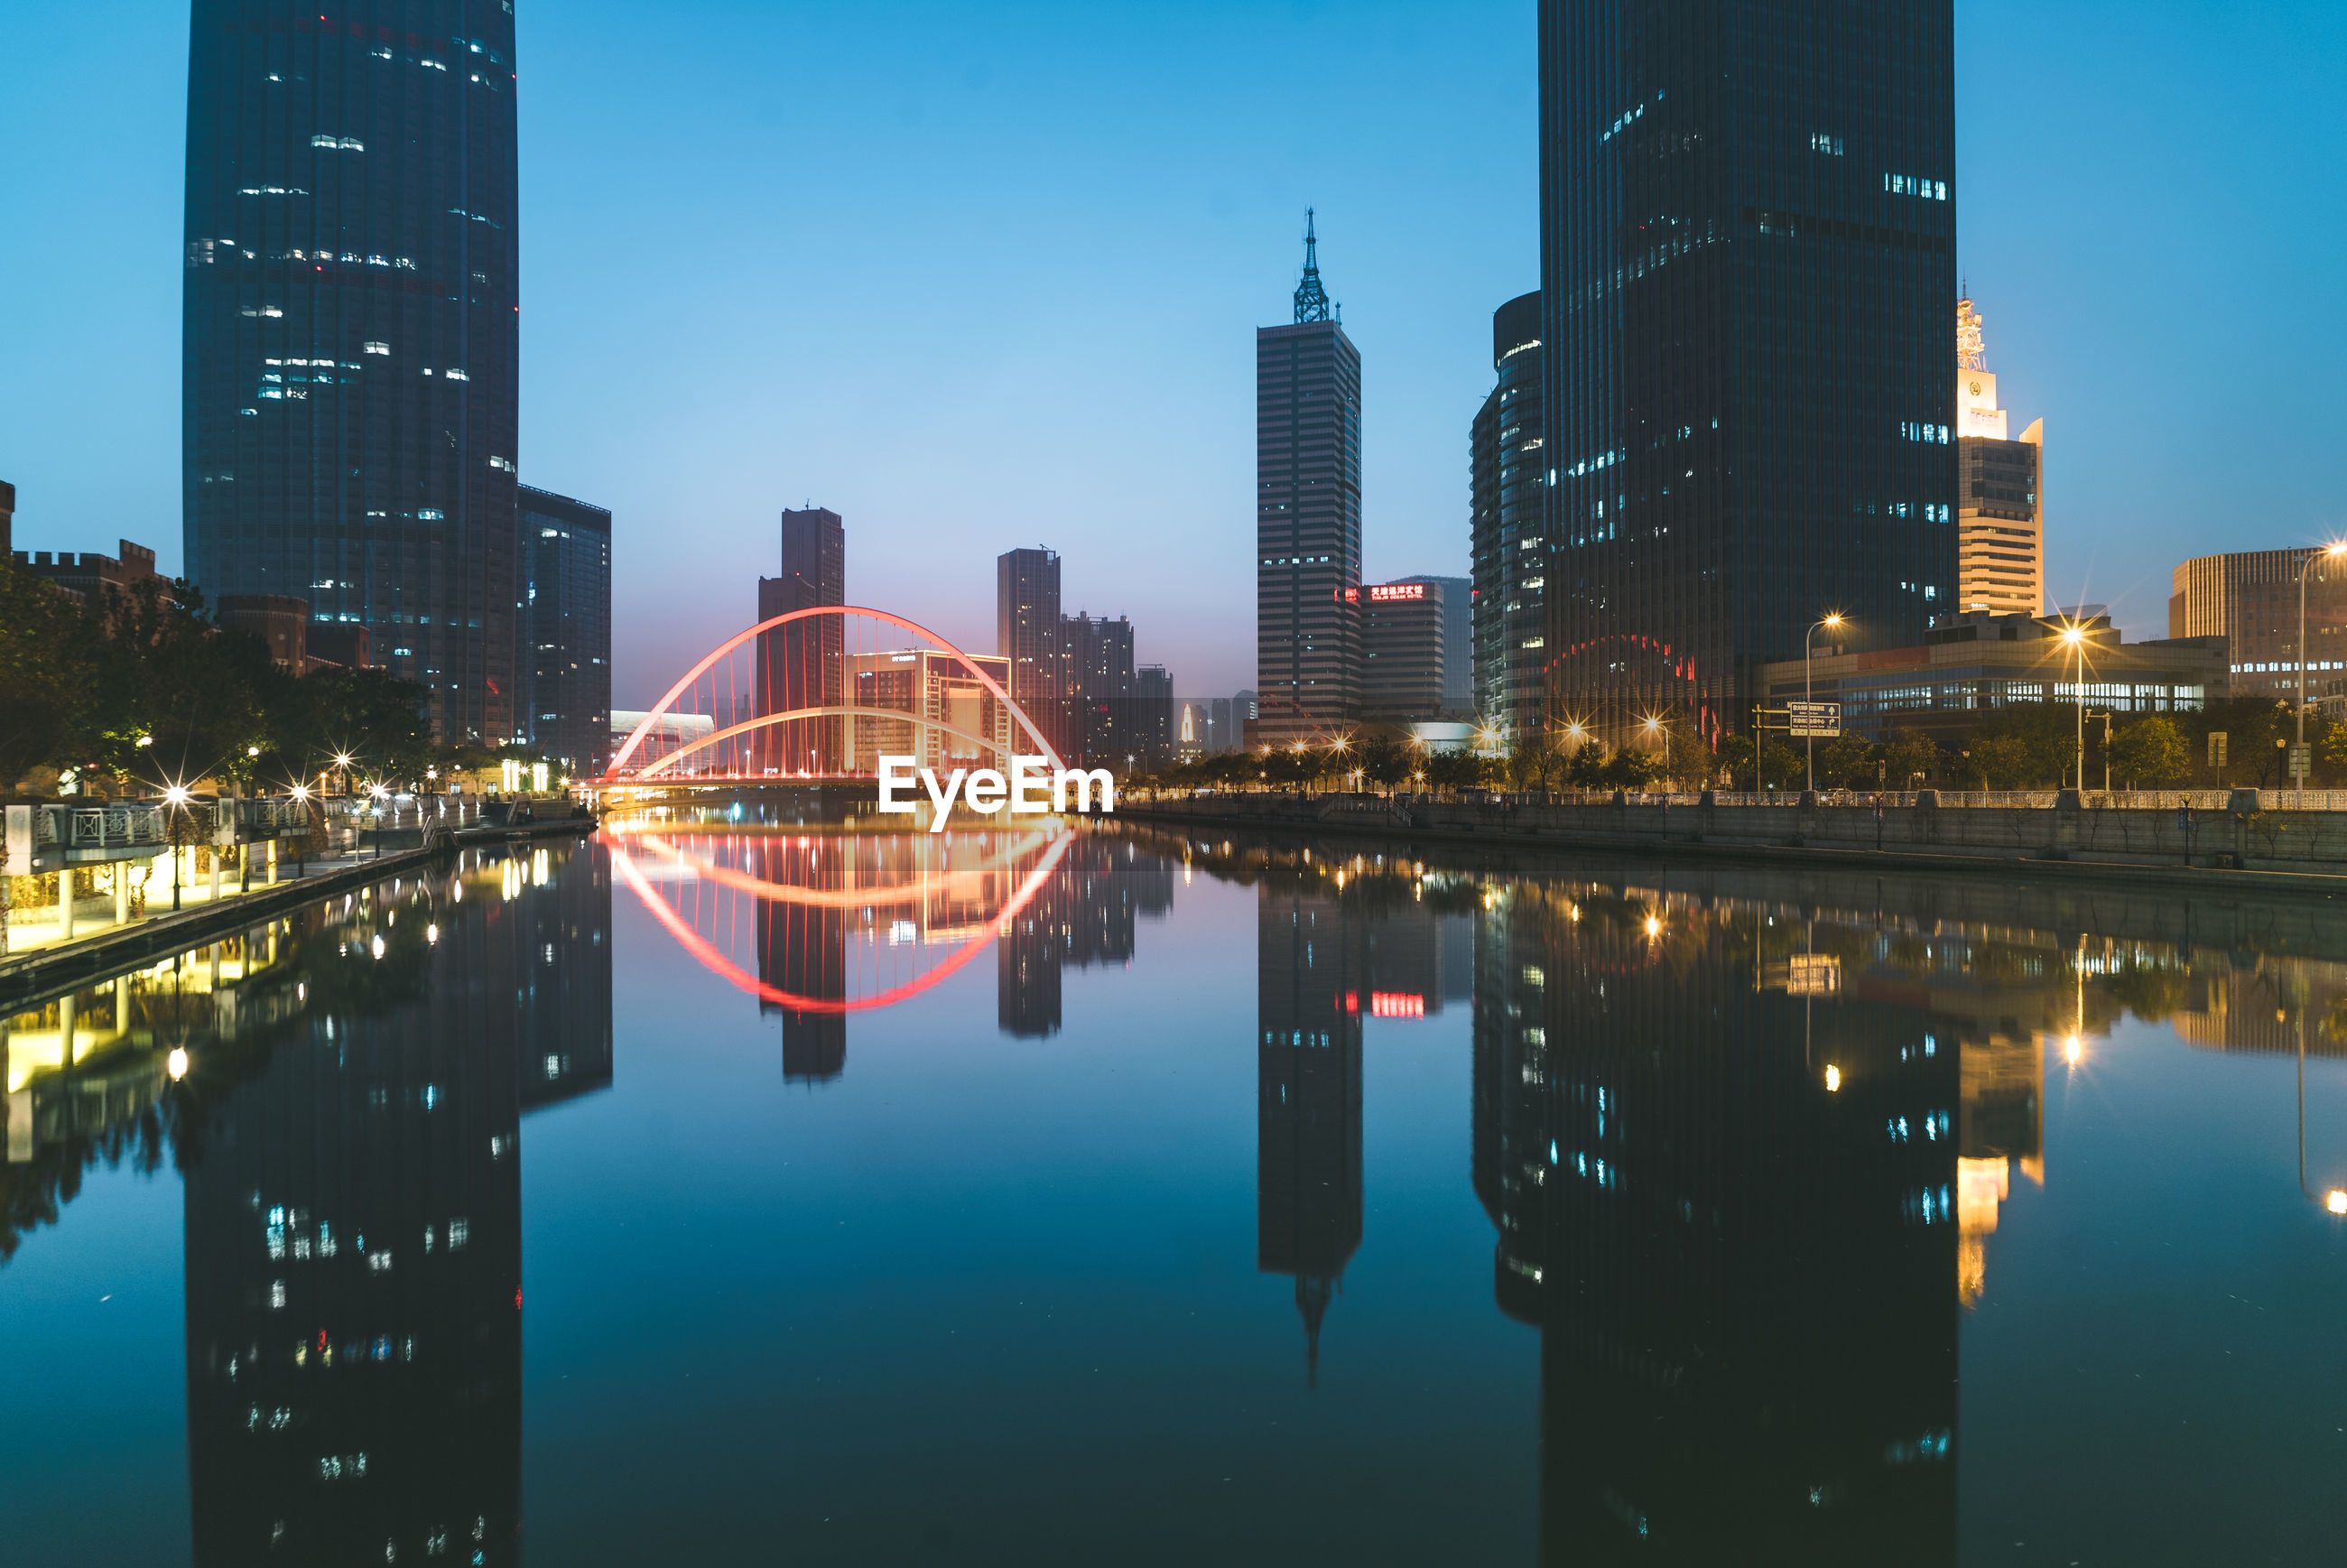 REFLECTION OF ILLUMINATED MODERN BUILDINGS IN CITY